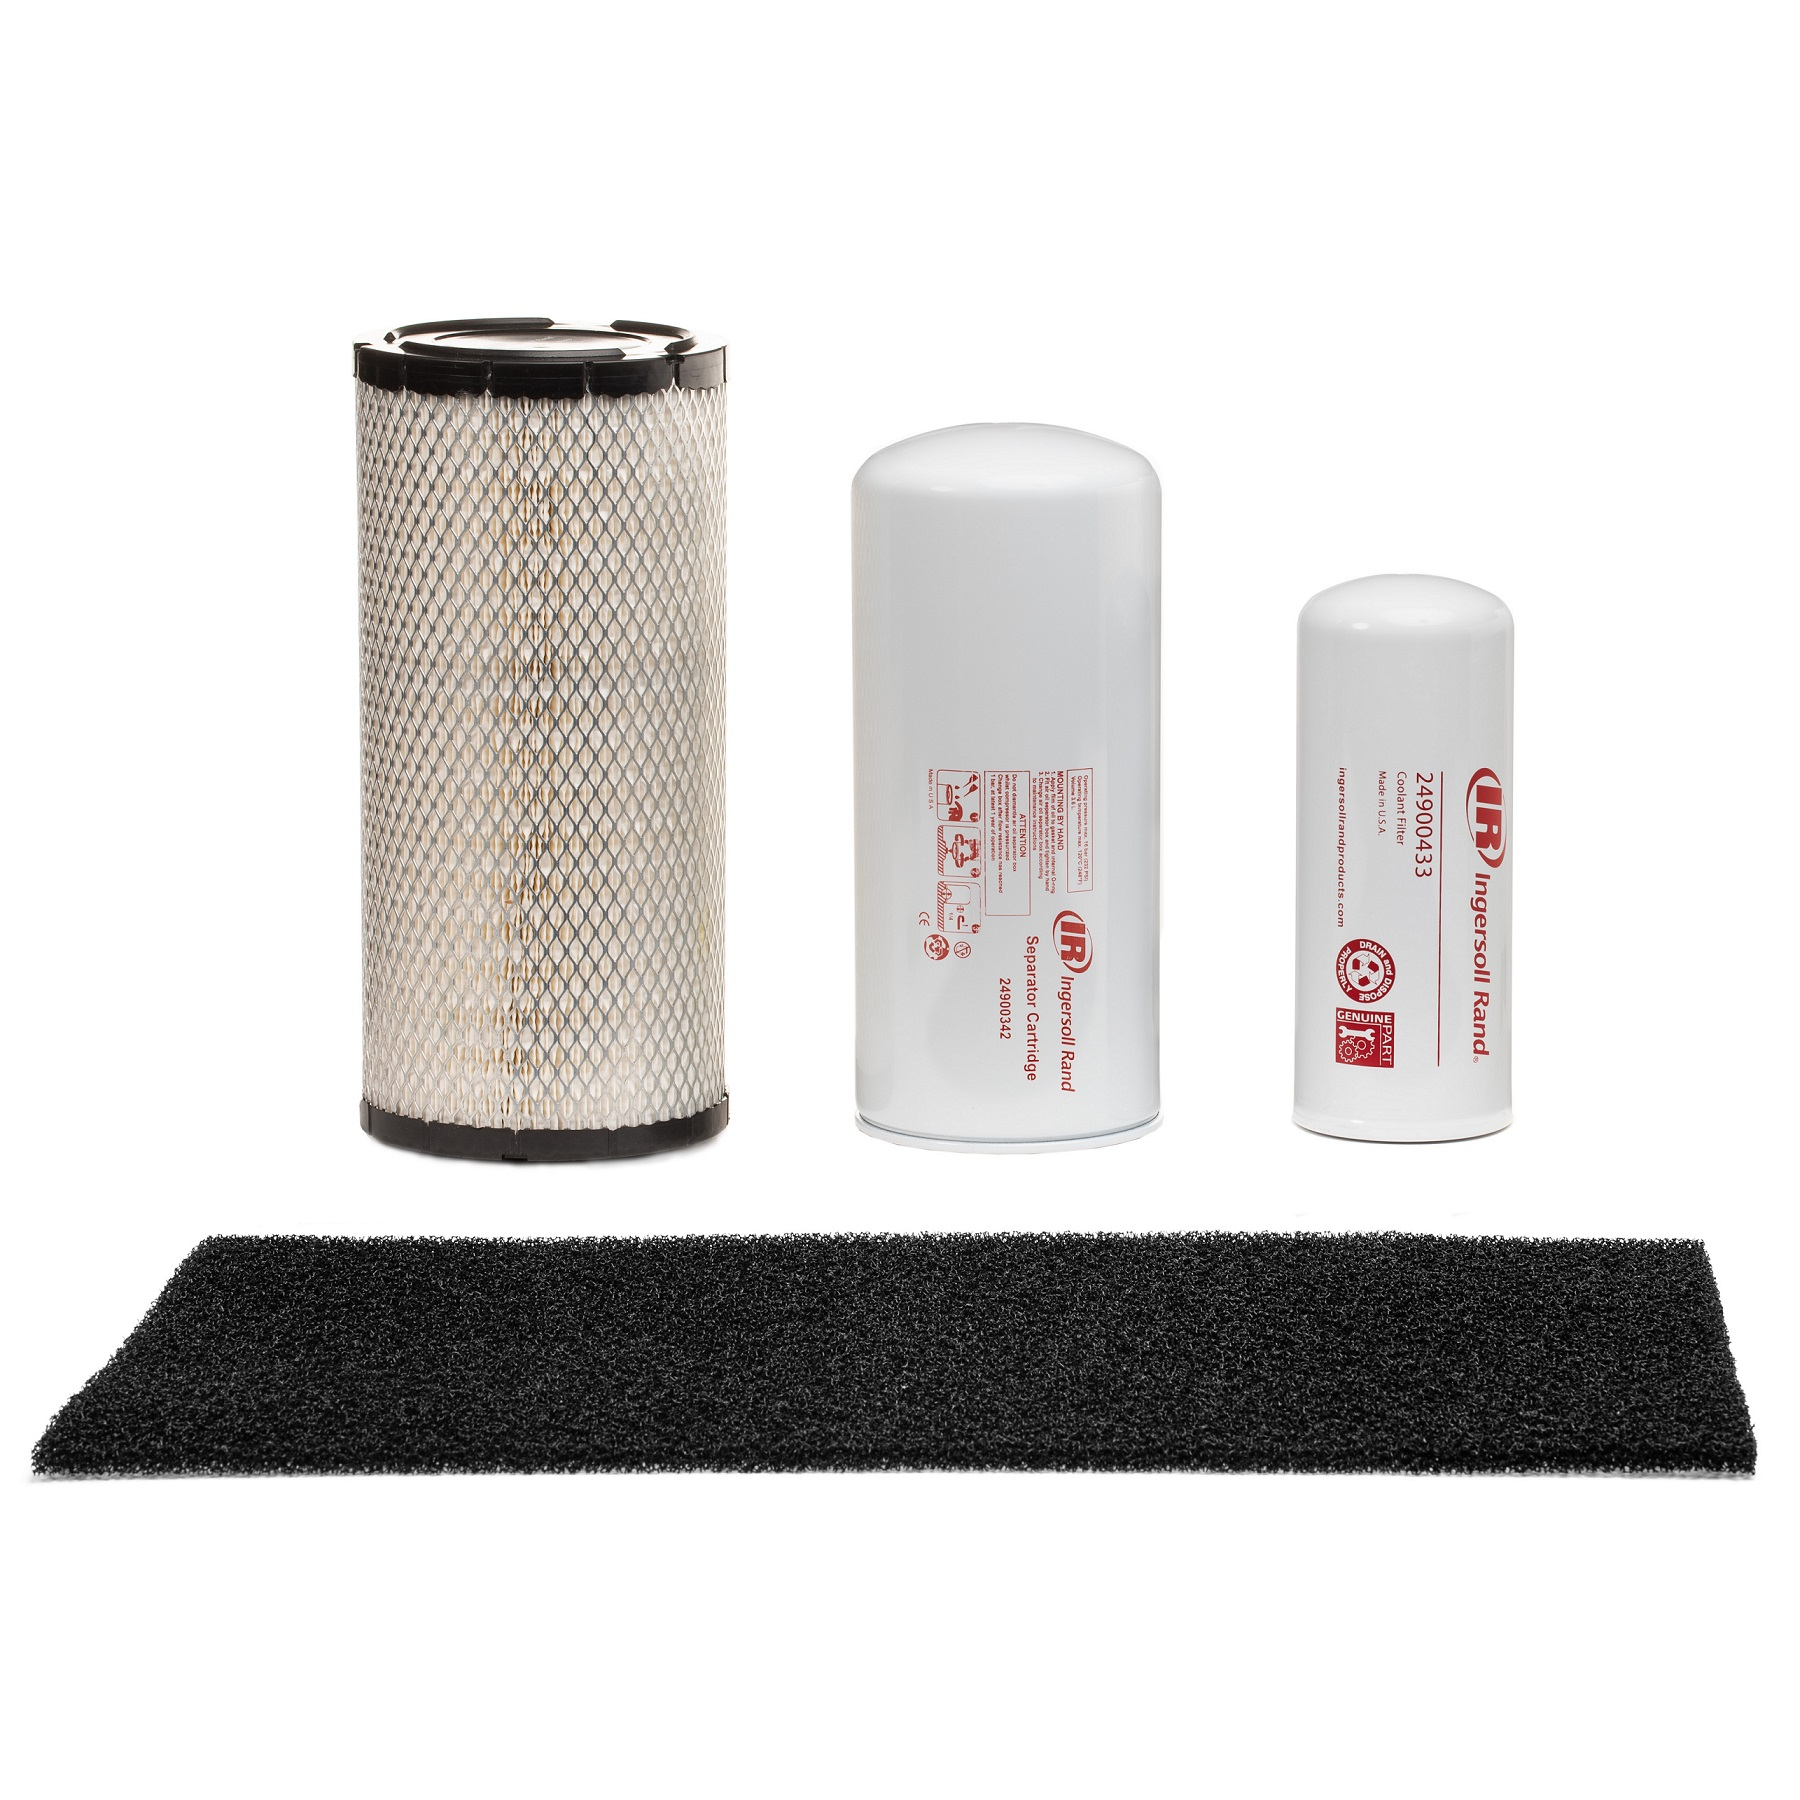 OEM Equivalent. Ingersoll Rand K240AA Replacement Filter Element